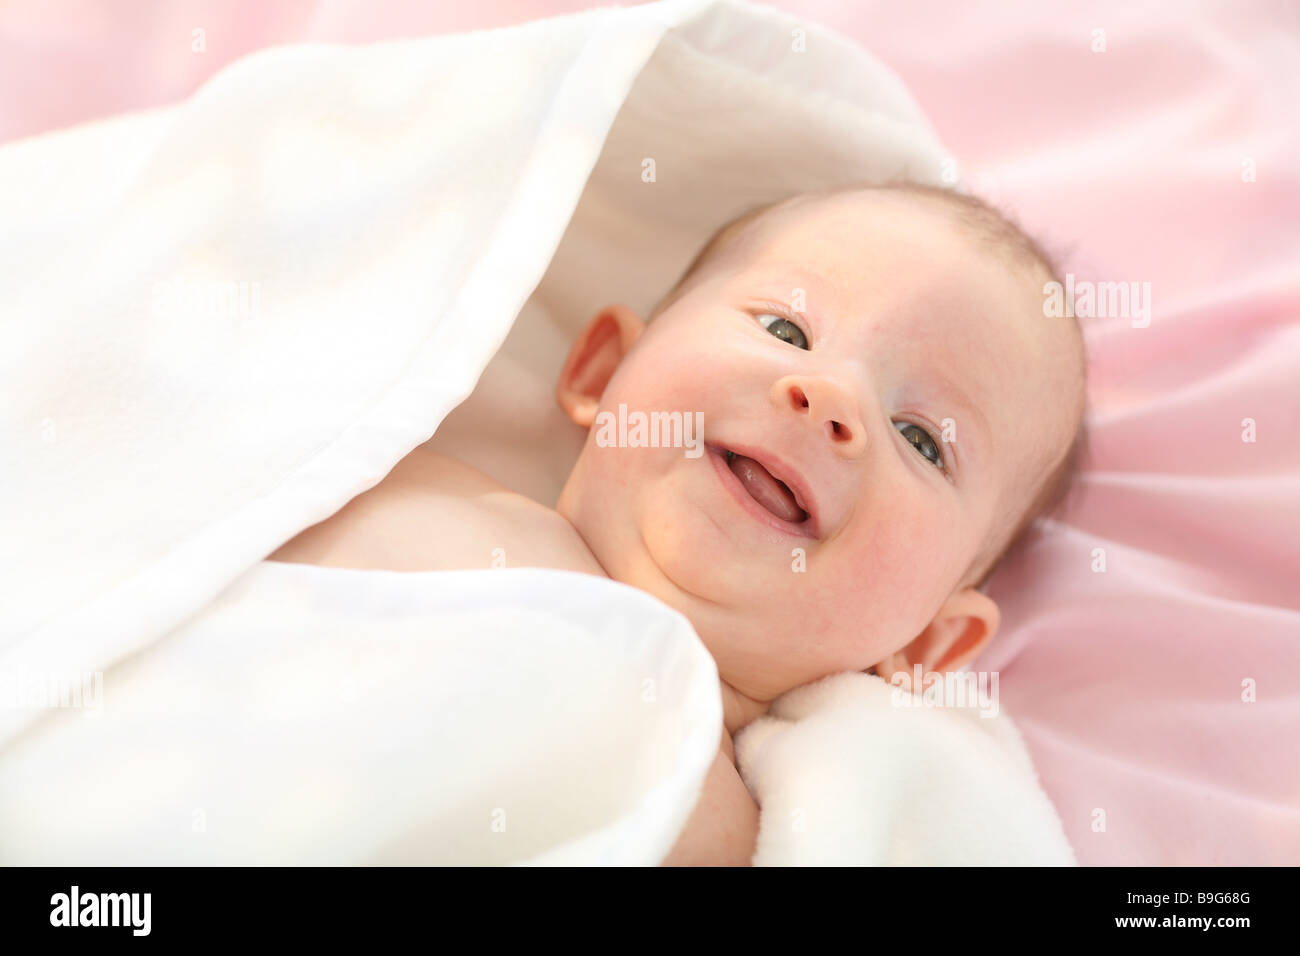 Baby lying supine position laughing blankets enveloped portrait 3 months resting observing baby gaze camera blankets - Stock Image